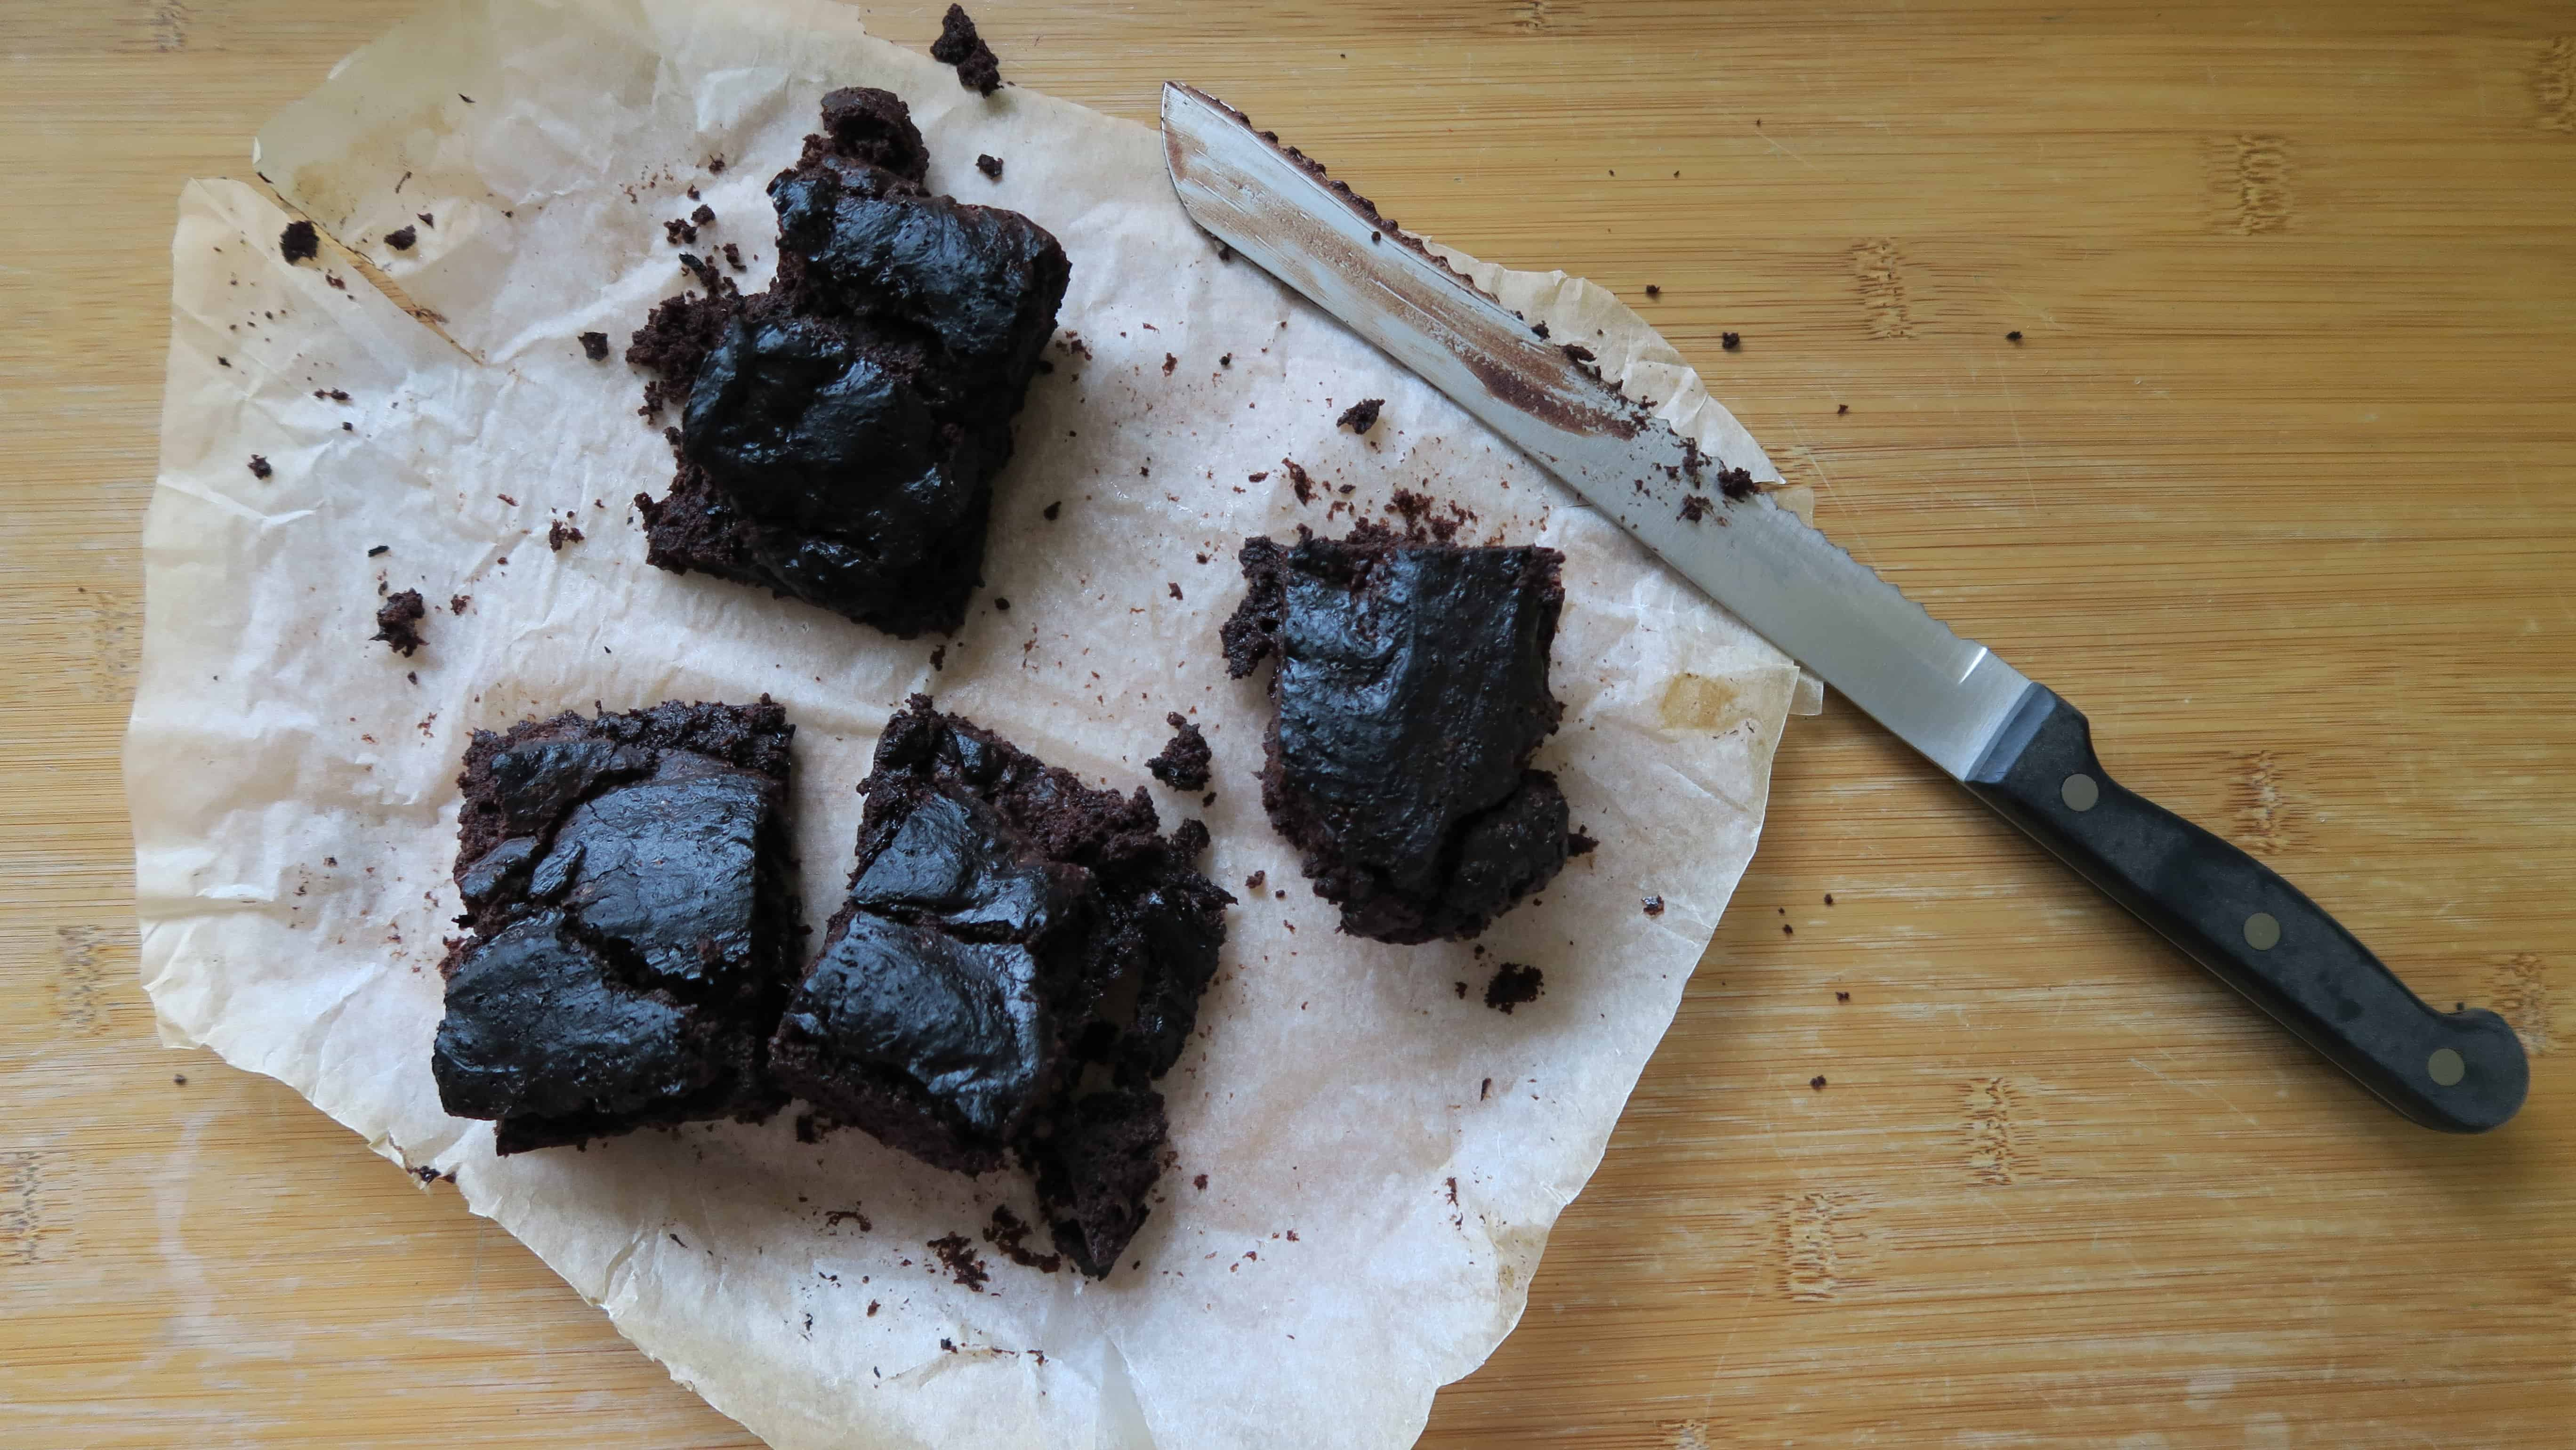 CHIPPA EGG FREE MAYO BROWNIES (C) SARAH HOWELLS THE GLUTEN FREE BLOGGER (51)